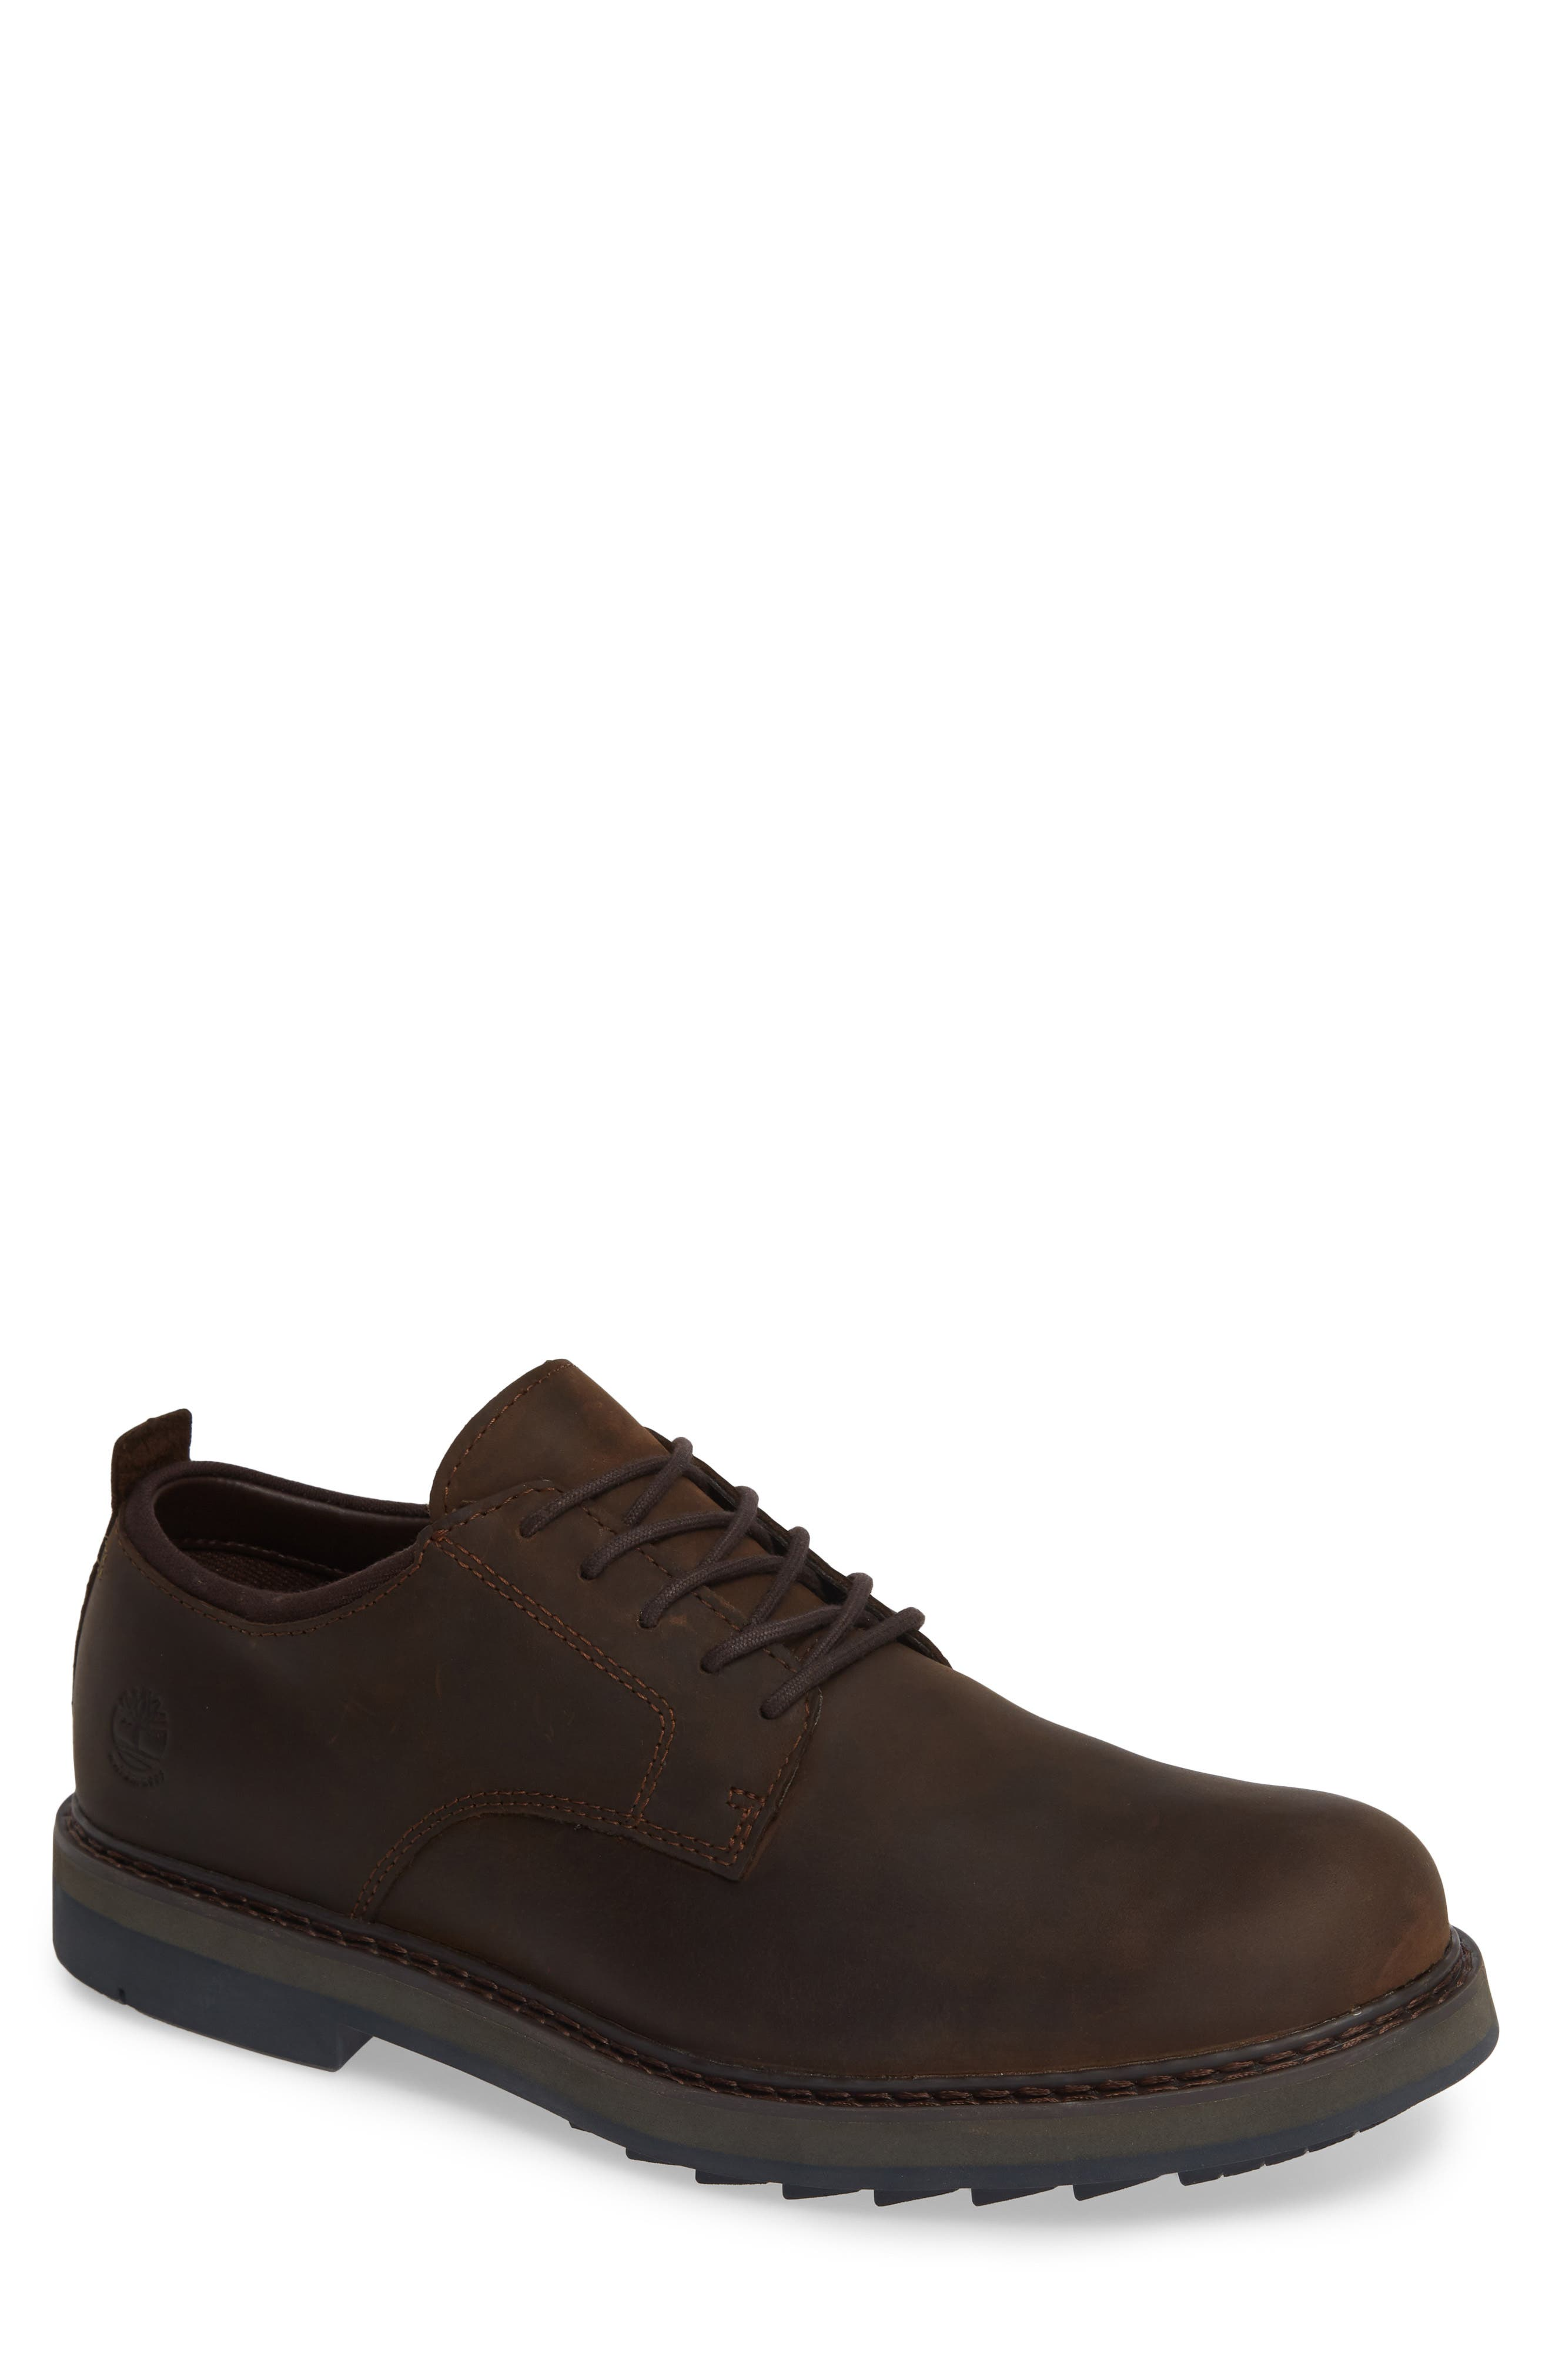 Squall Canyon Waterproof Plain Toe Derby,                         Main,                         color, BROWN LEATHER